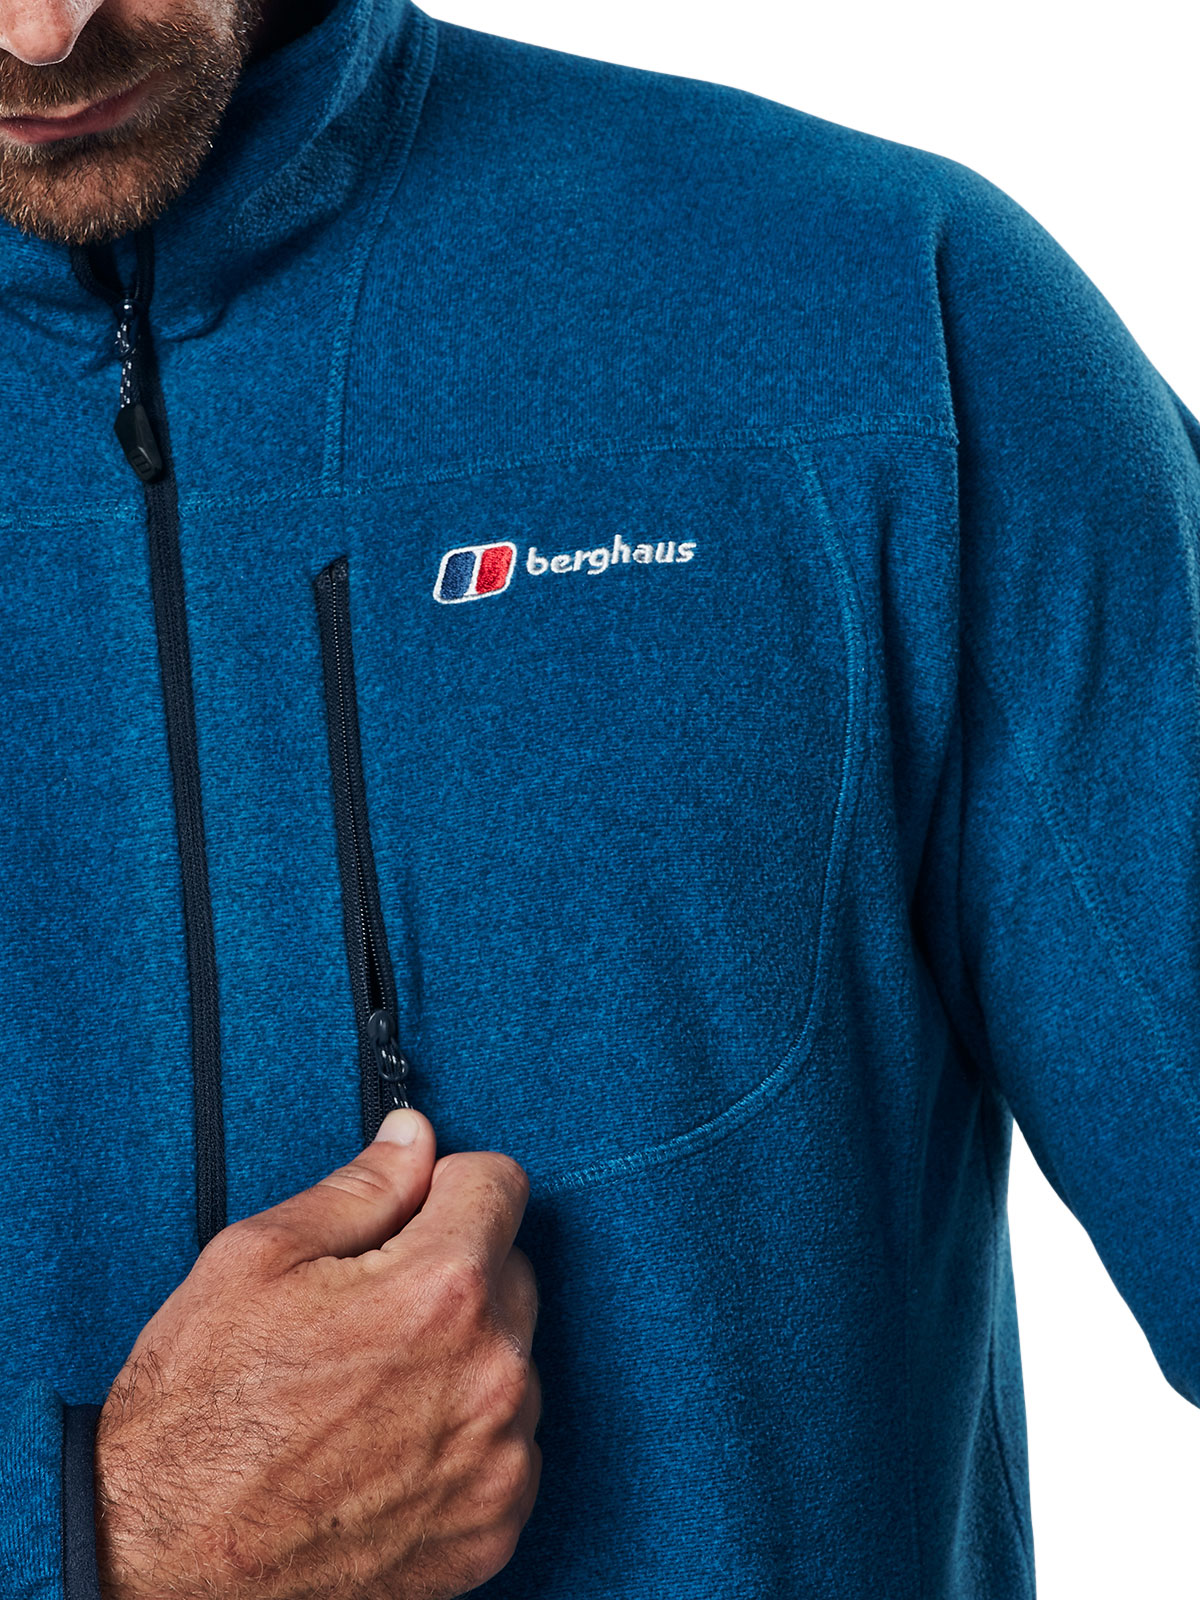 Berghaus Spectrum Micro 2.0 Mens Outdoor Fleece Sweatshirt